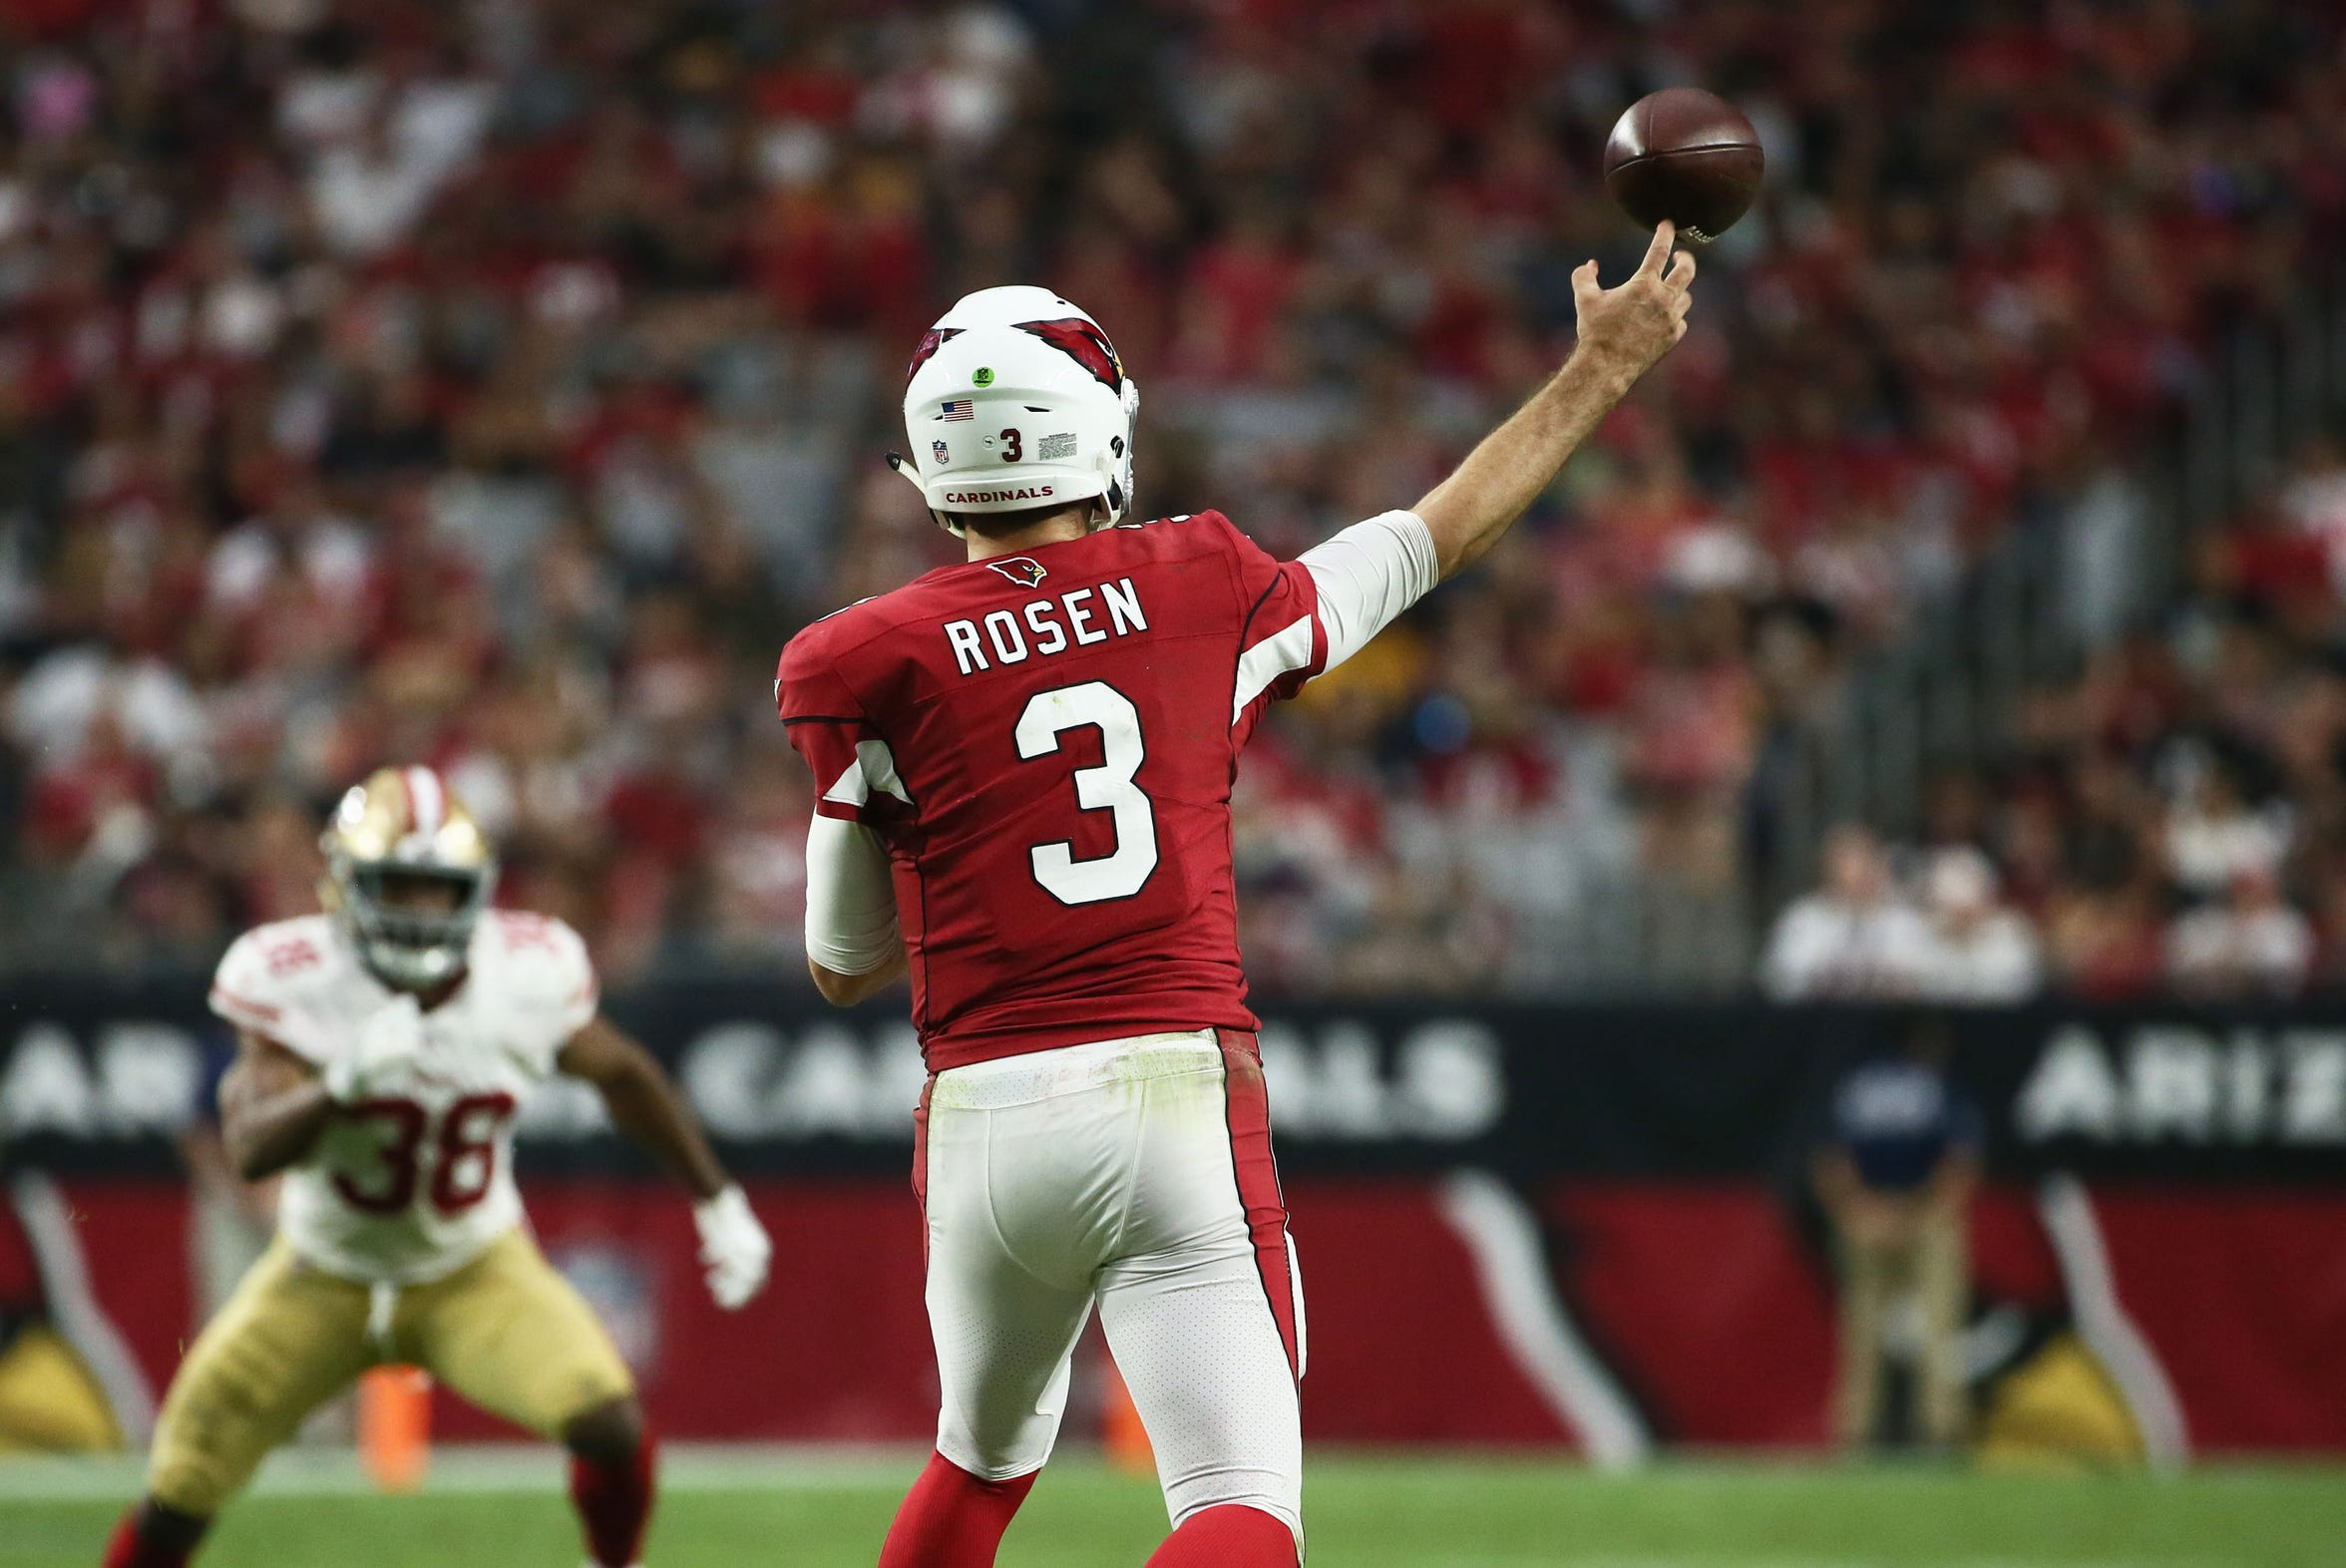 Josh Rosen throws a pass against the 49ers in the Cardinals' second win of the season late last month.